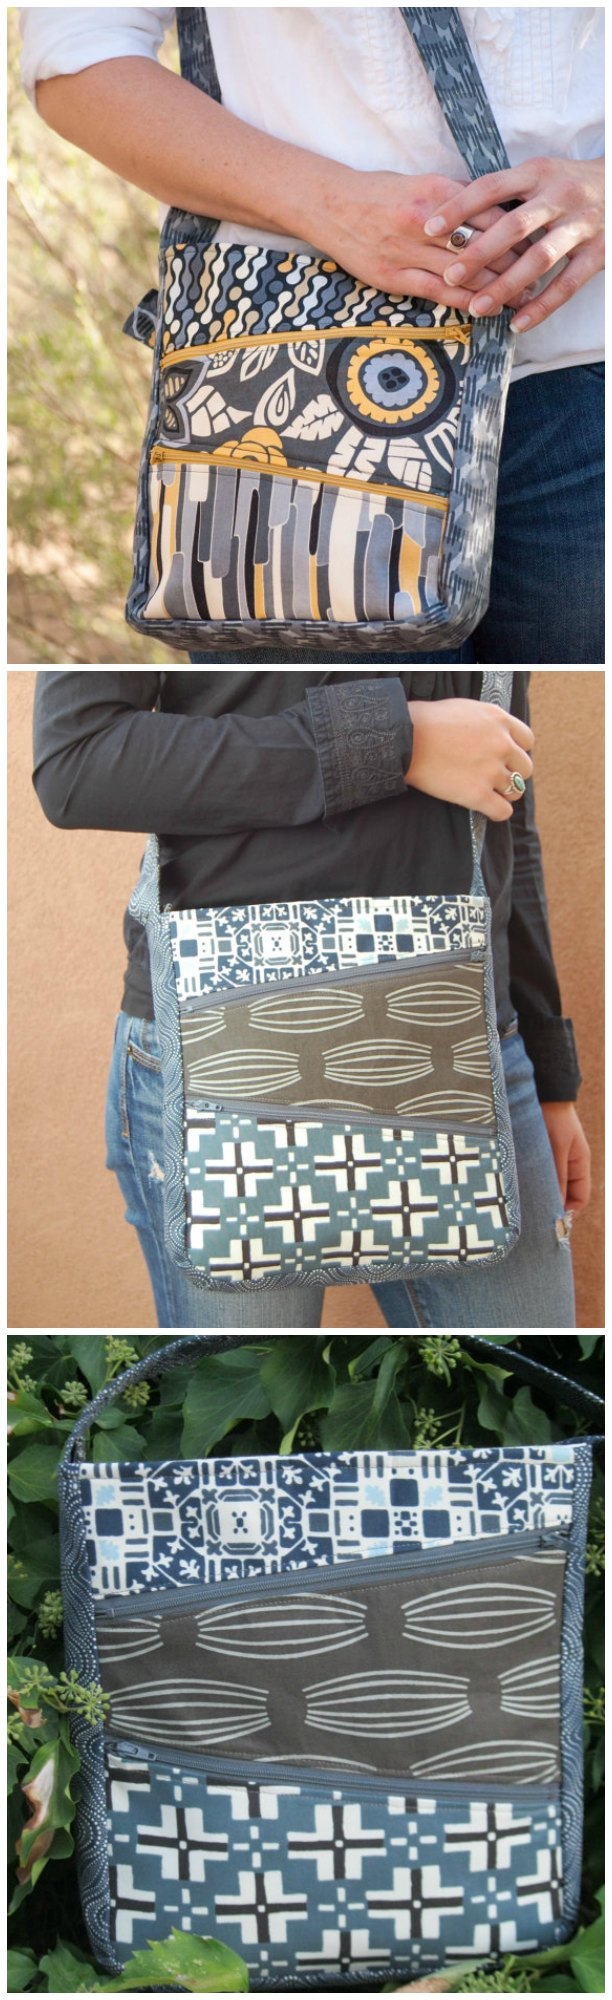 Great bag sewing pattern.  Sometimes you just can't have too many pockets when you need to stay organised.  One of my favorite daytime bags to sew.